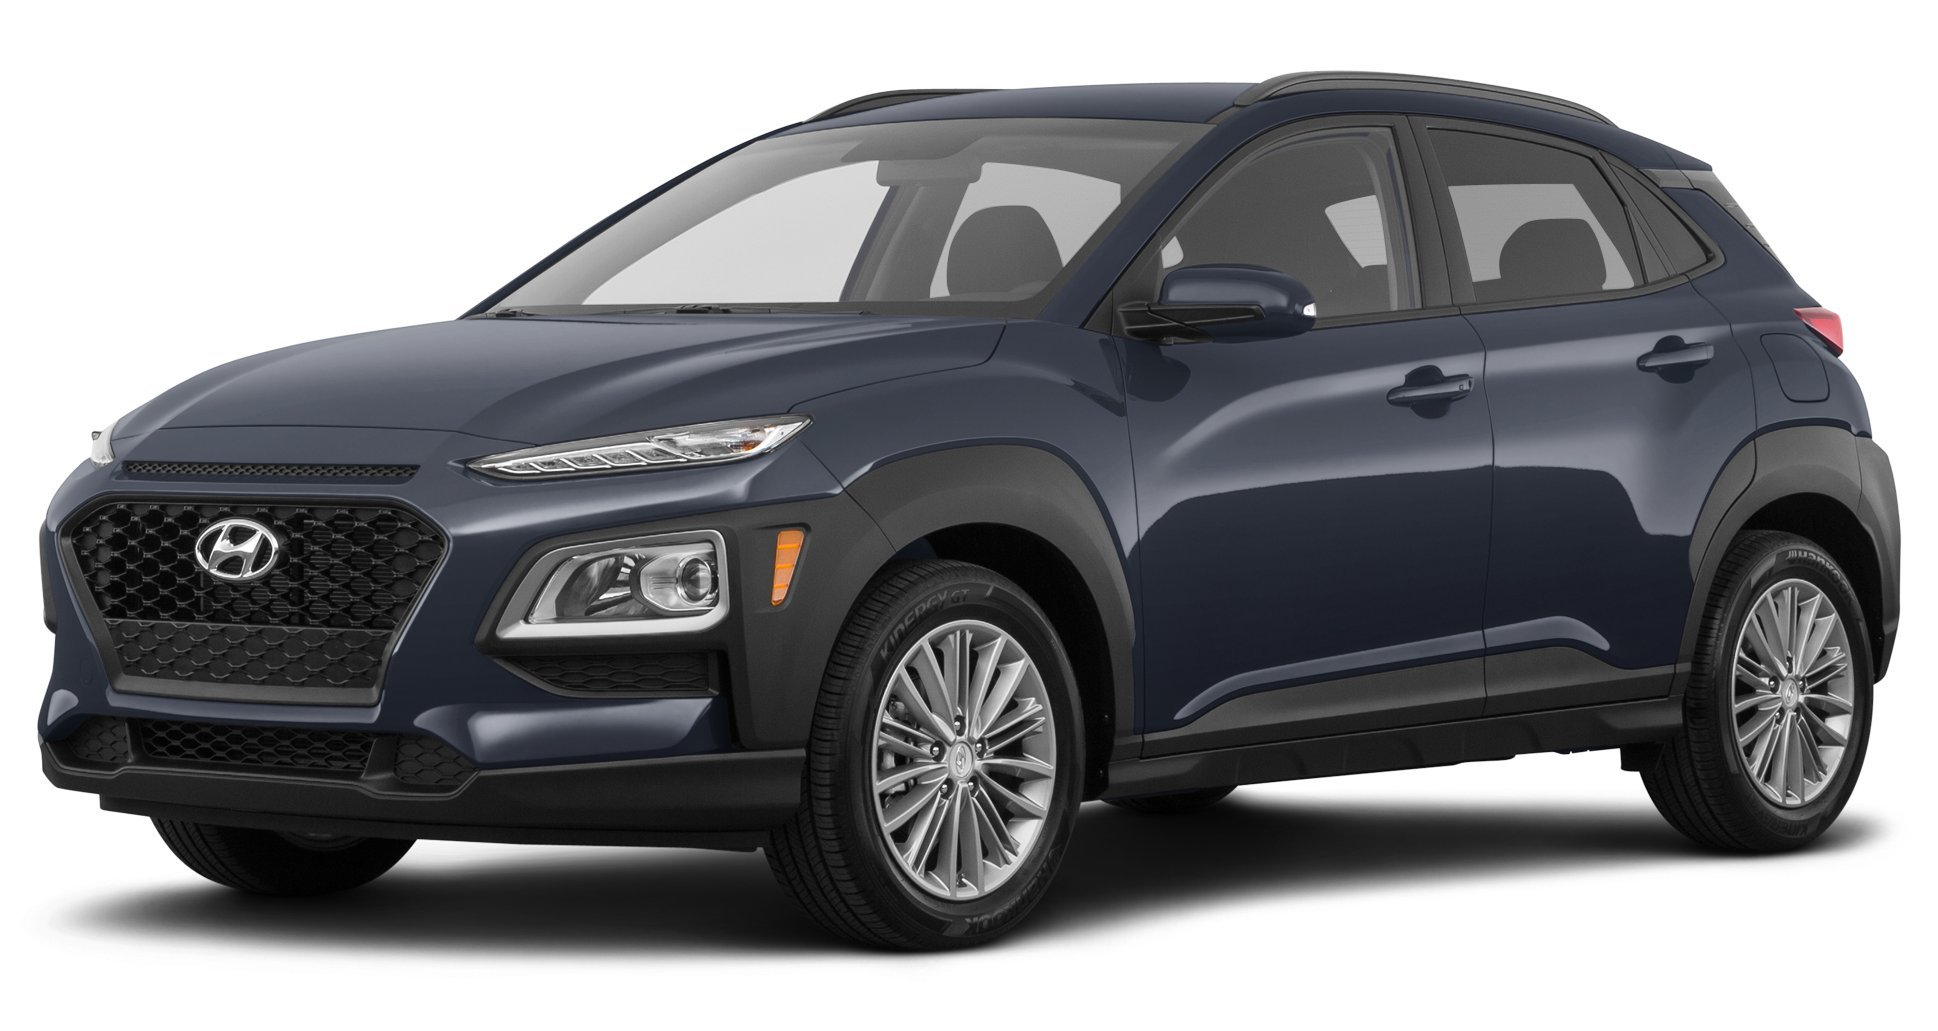 2018 Chevrolet Trax Reviews Images And Specs Vehicles Body Wiring Diagram For 1955 Passenger Car Four Door Sedan Ls All Wheel Drive 4 Hyundai Kona Sel 20l Automatic Transmission